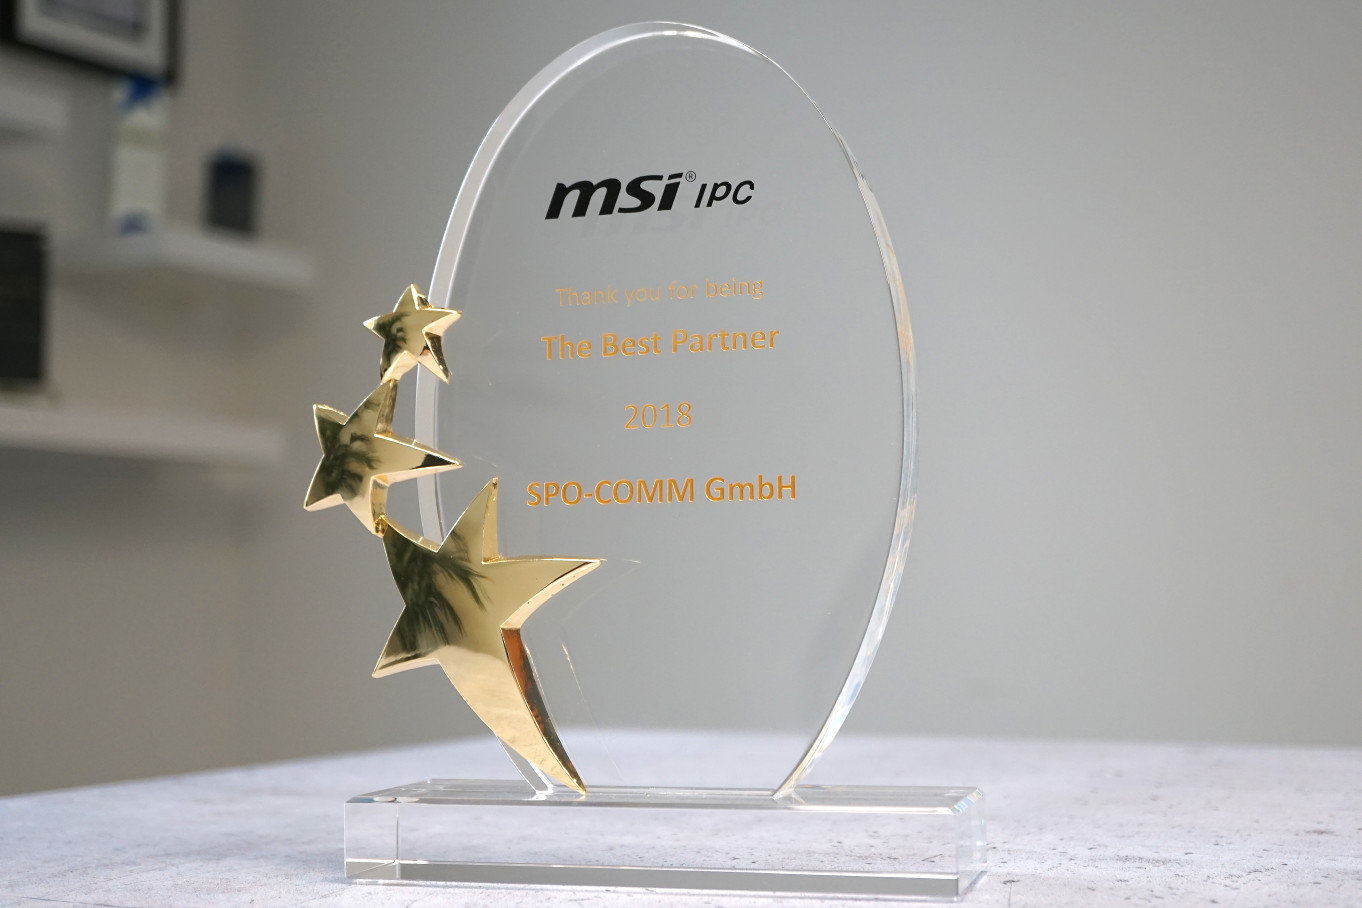 spo-comm was honored with the MSI IPC Award 2018!